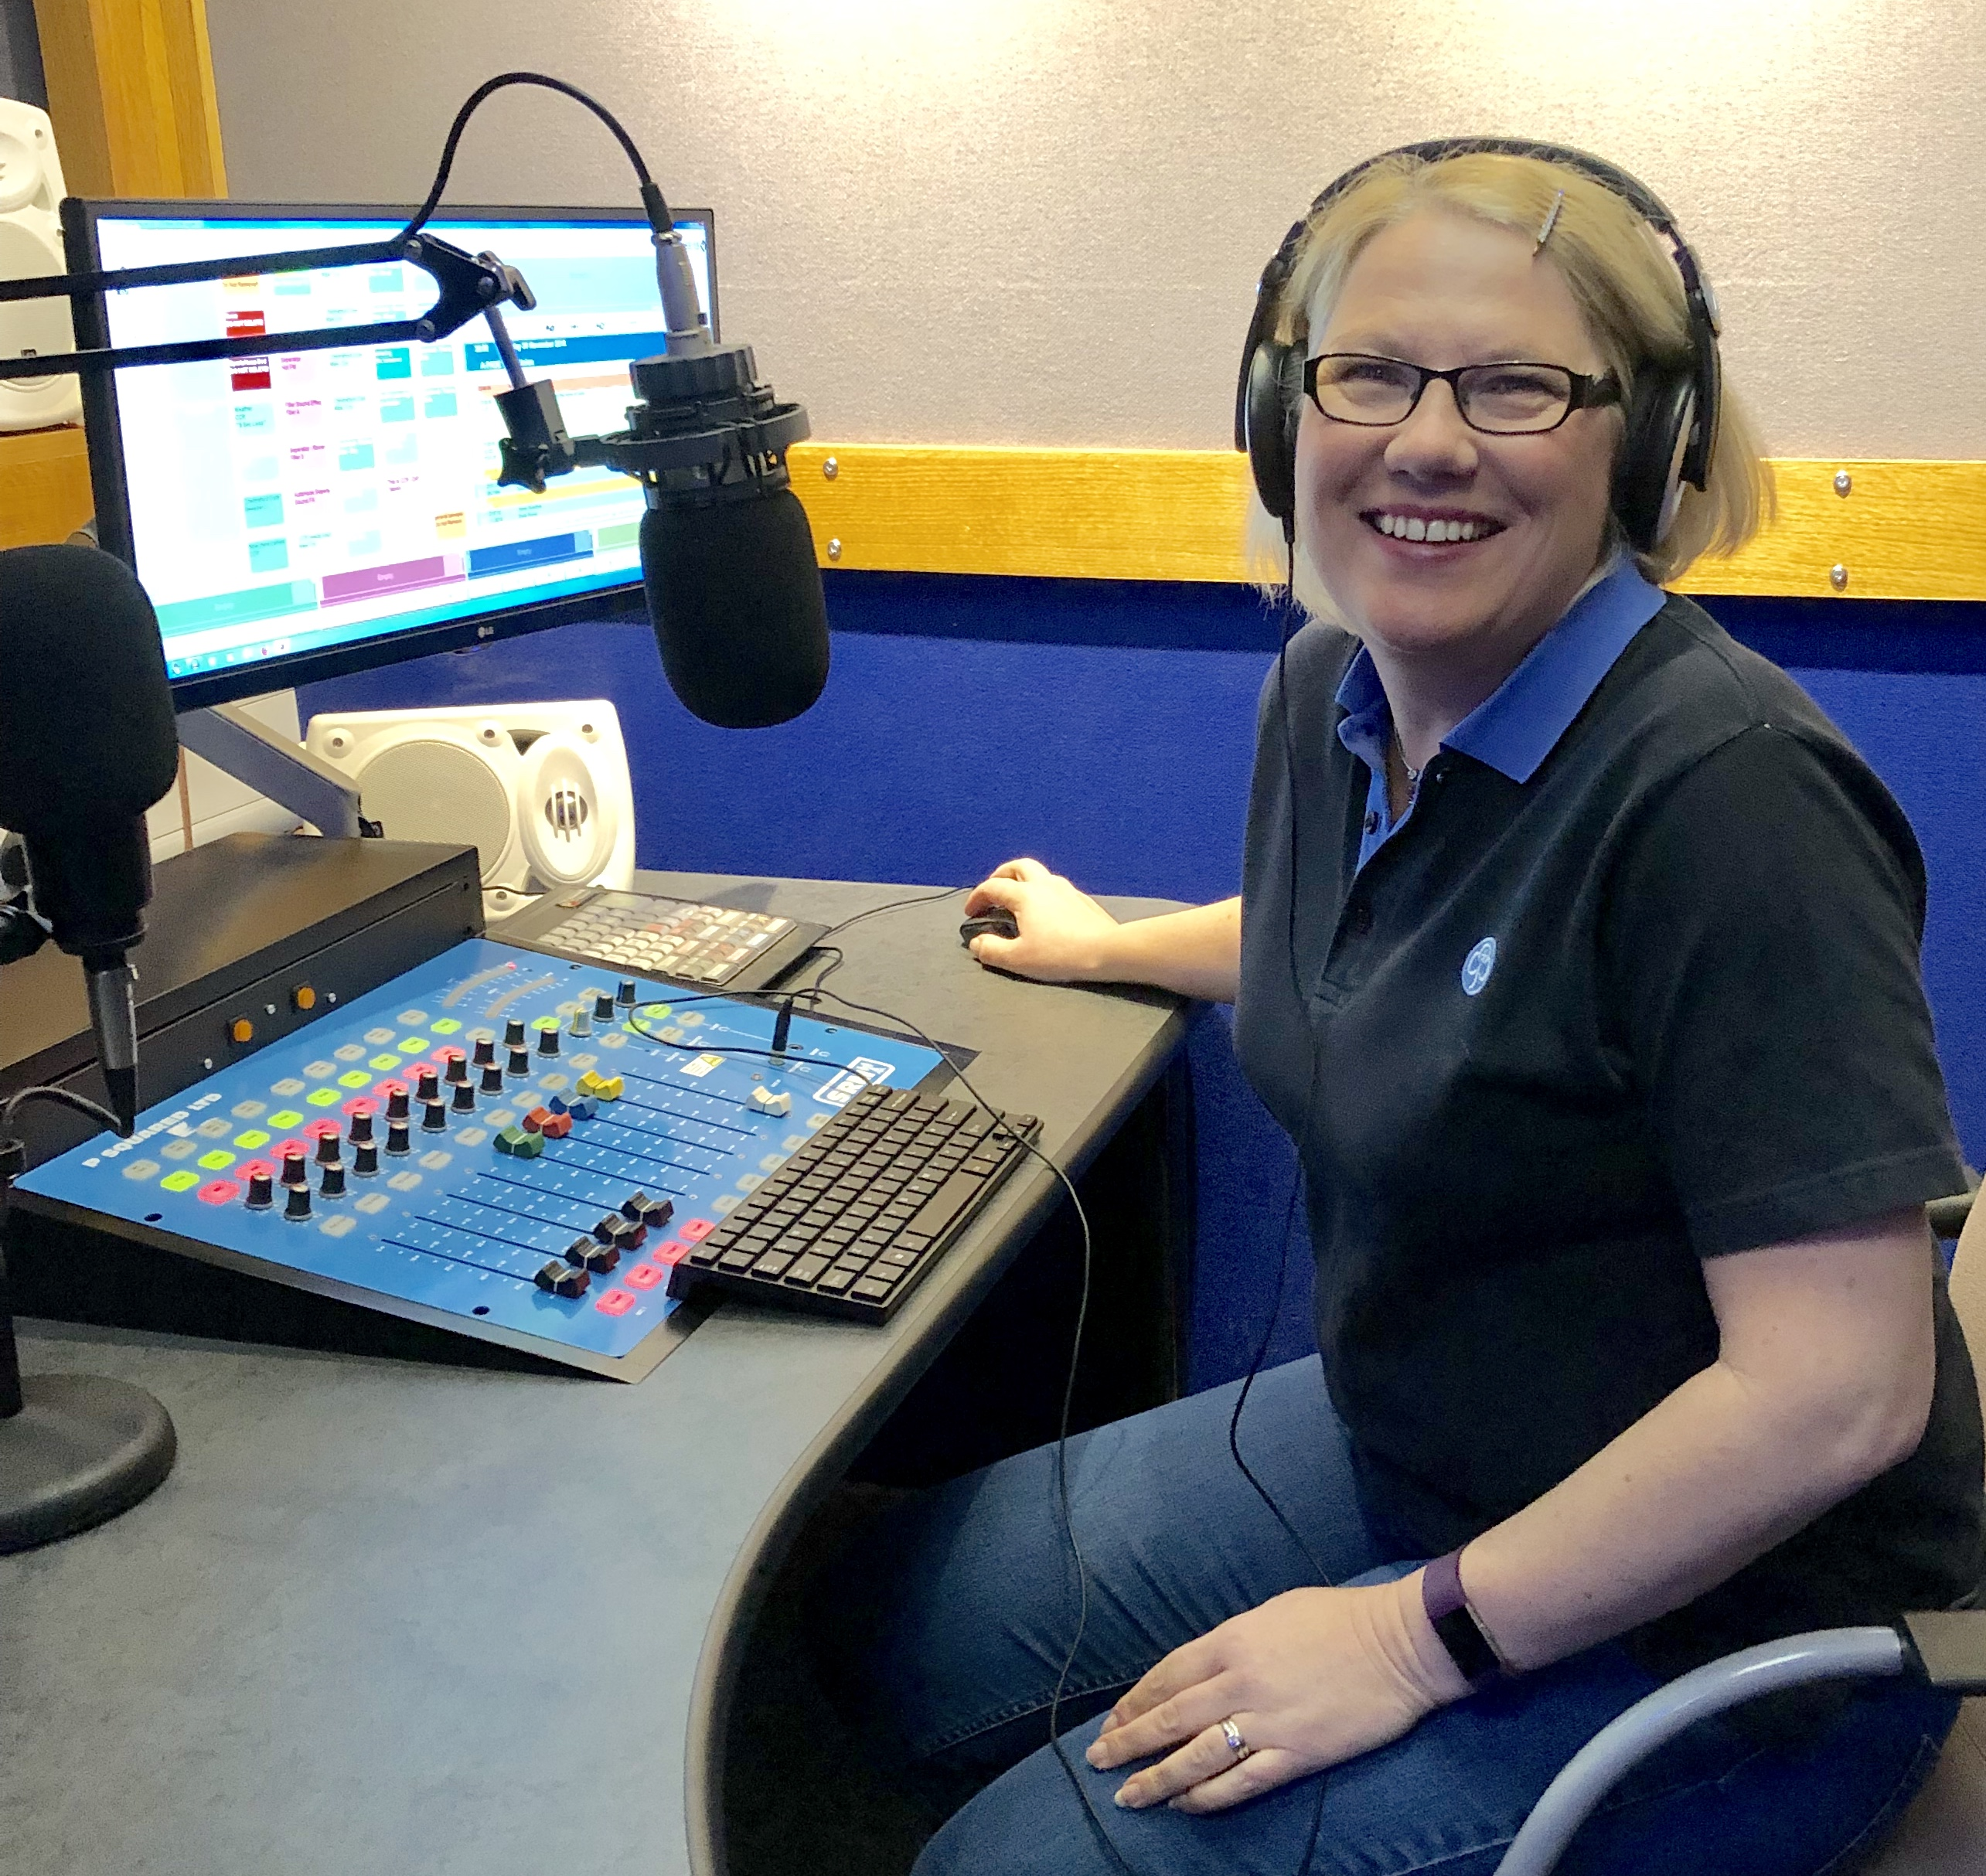 A guide leader in front of a radio broadcasting desk